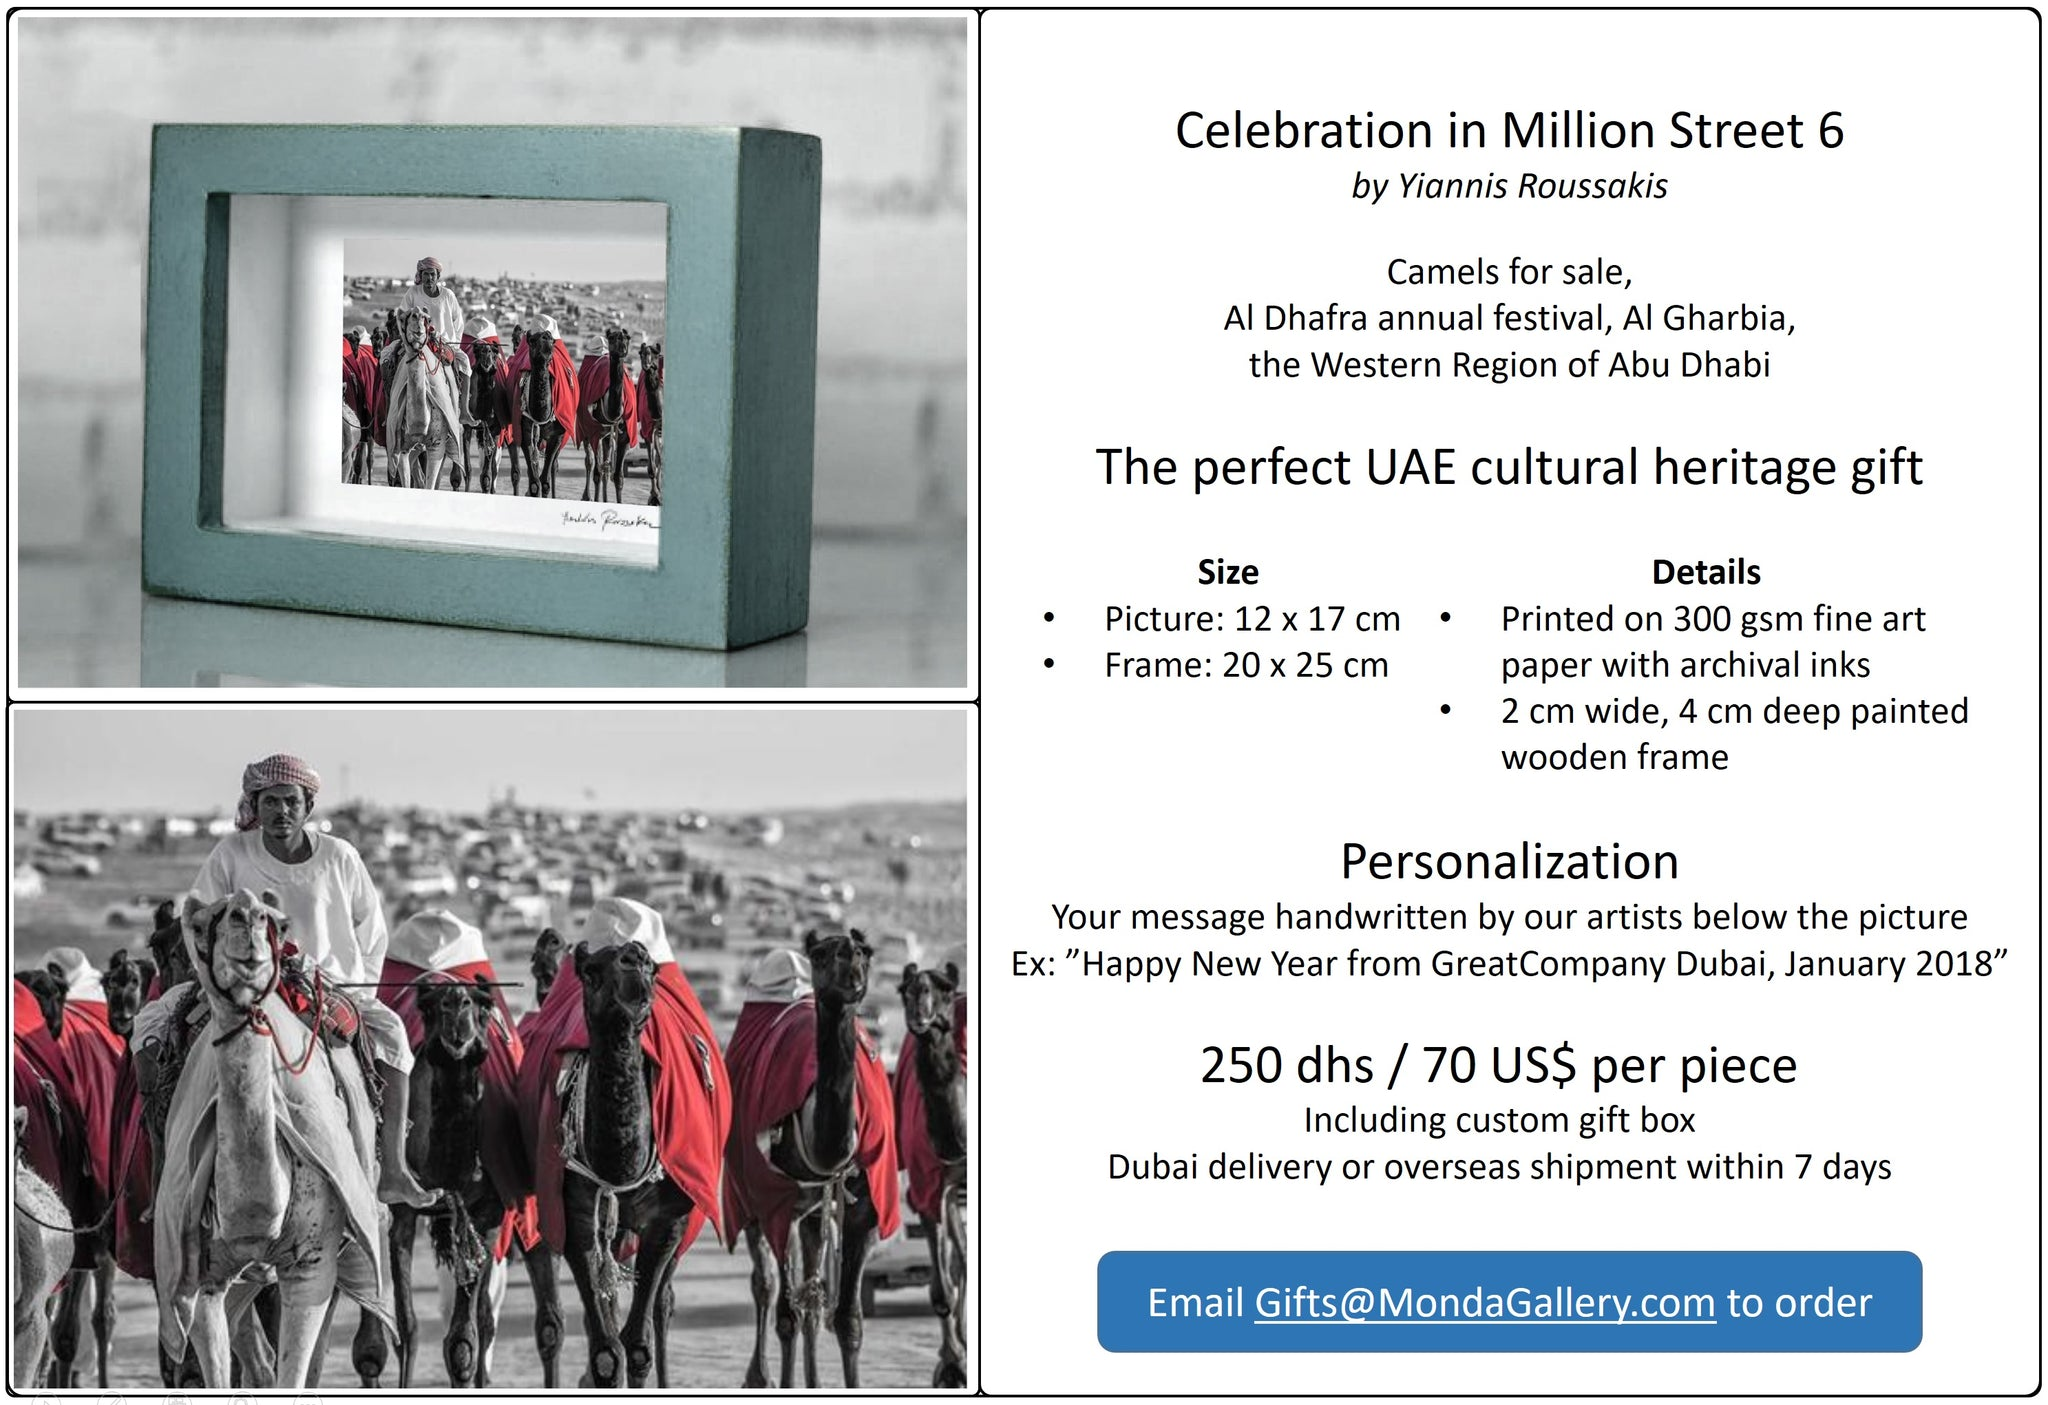 Celebration in Million Street 6 - Corporate Framed Art Gift